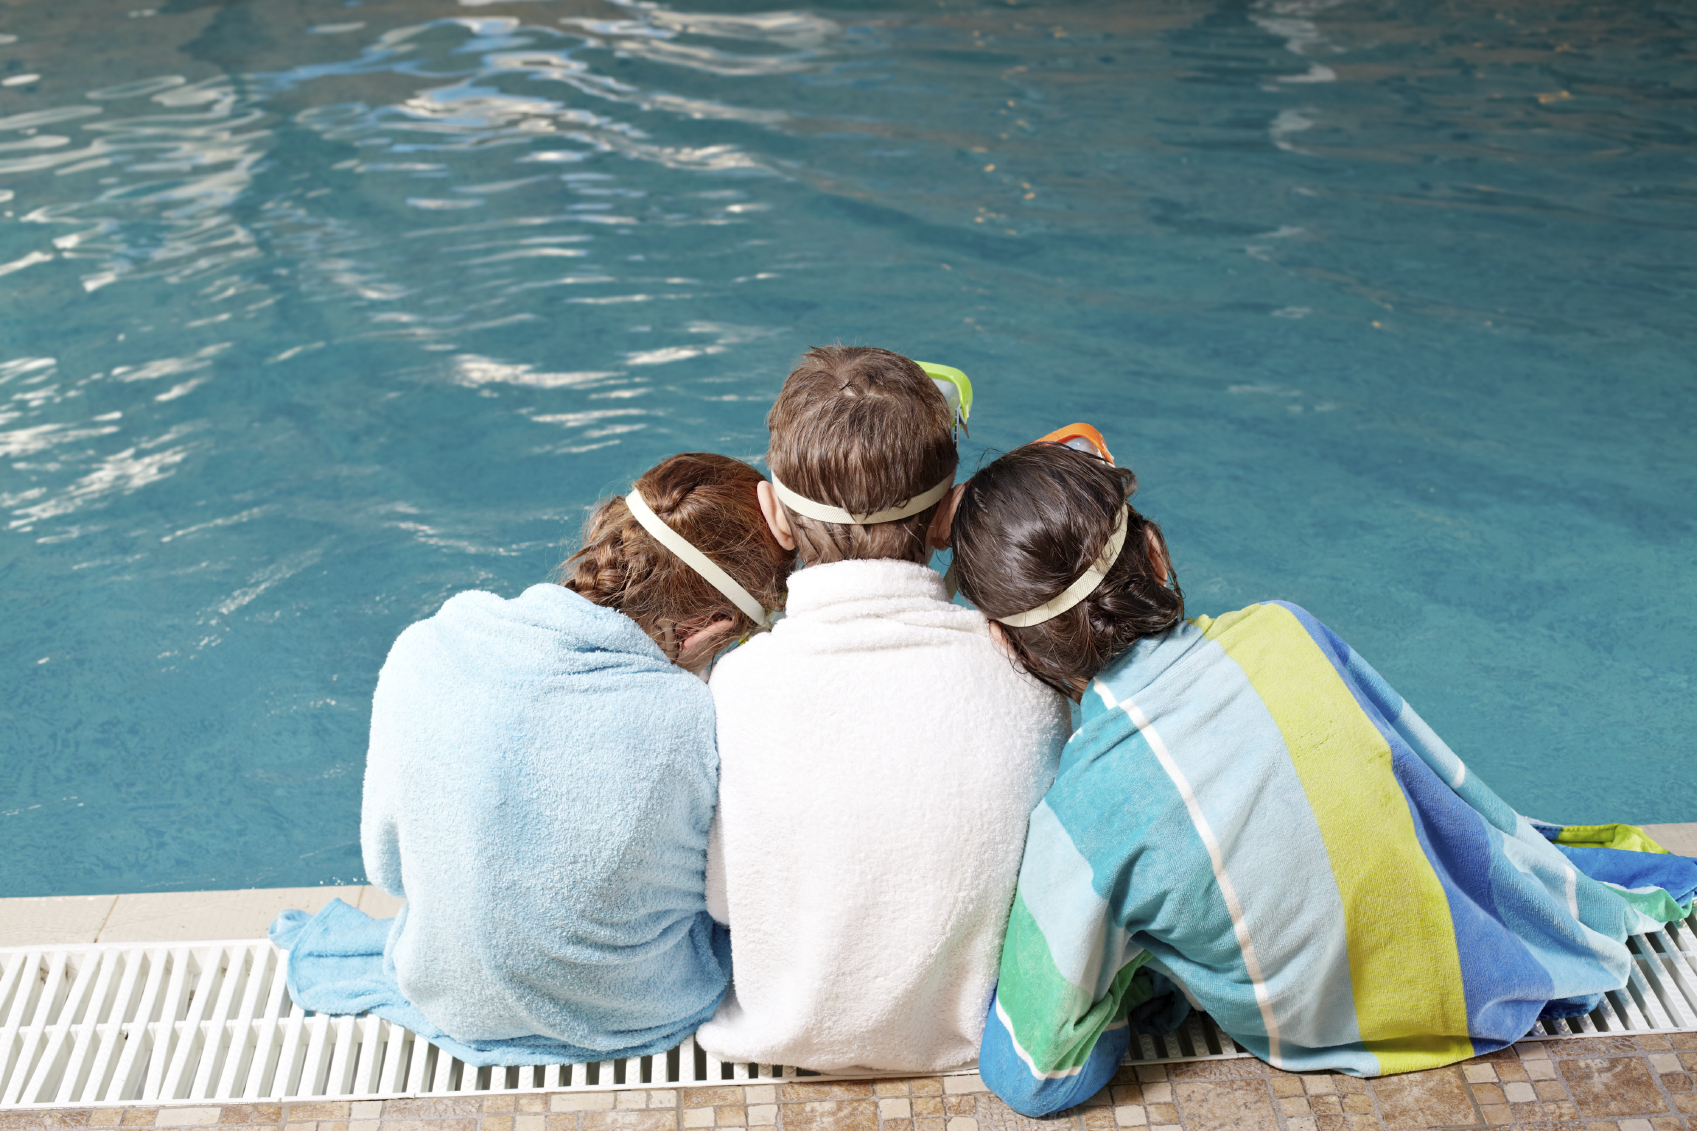 preventing drowning and secondary drowning at the swimming pool